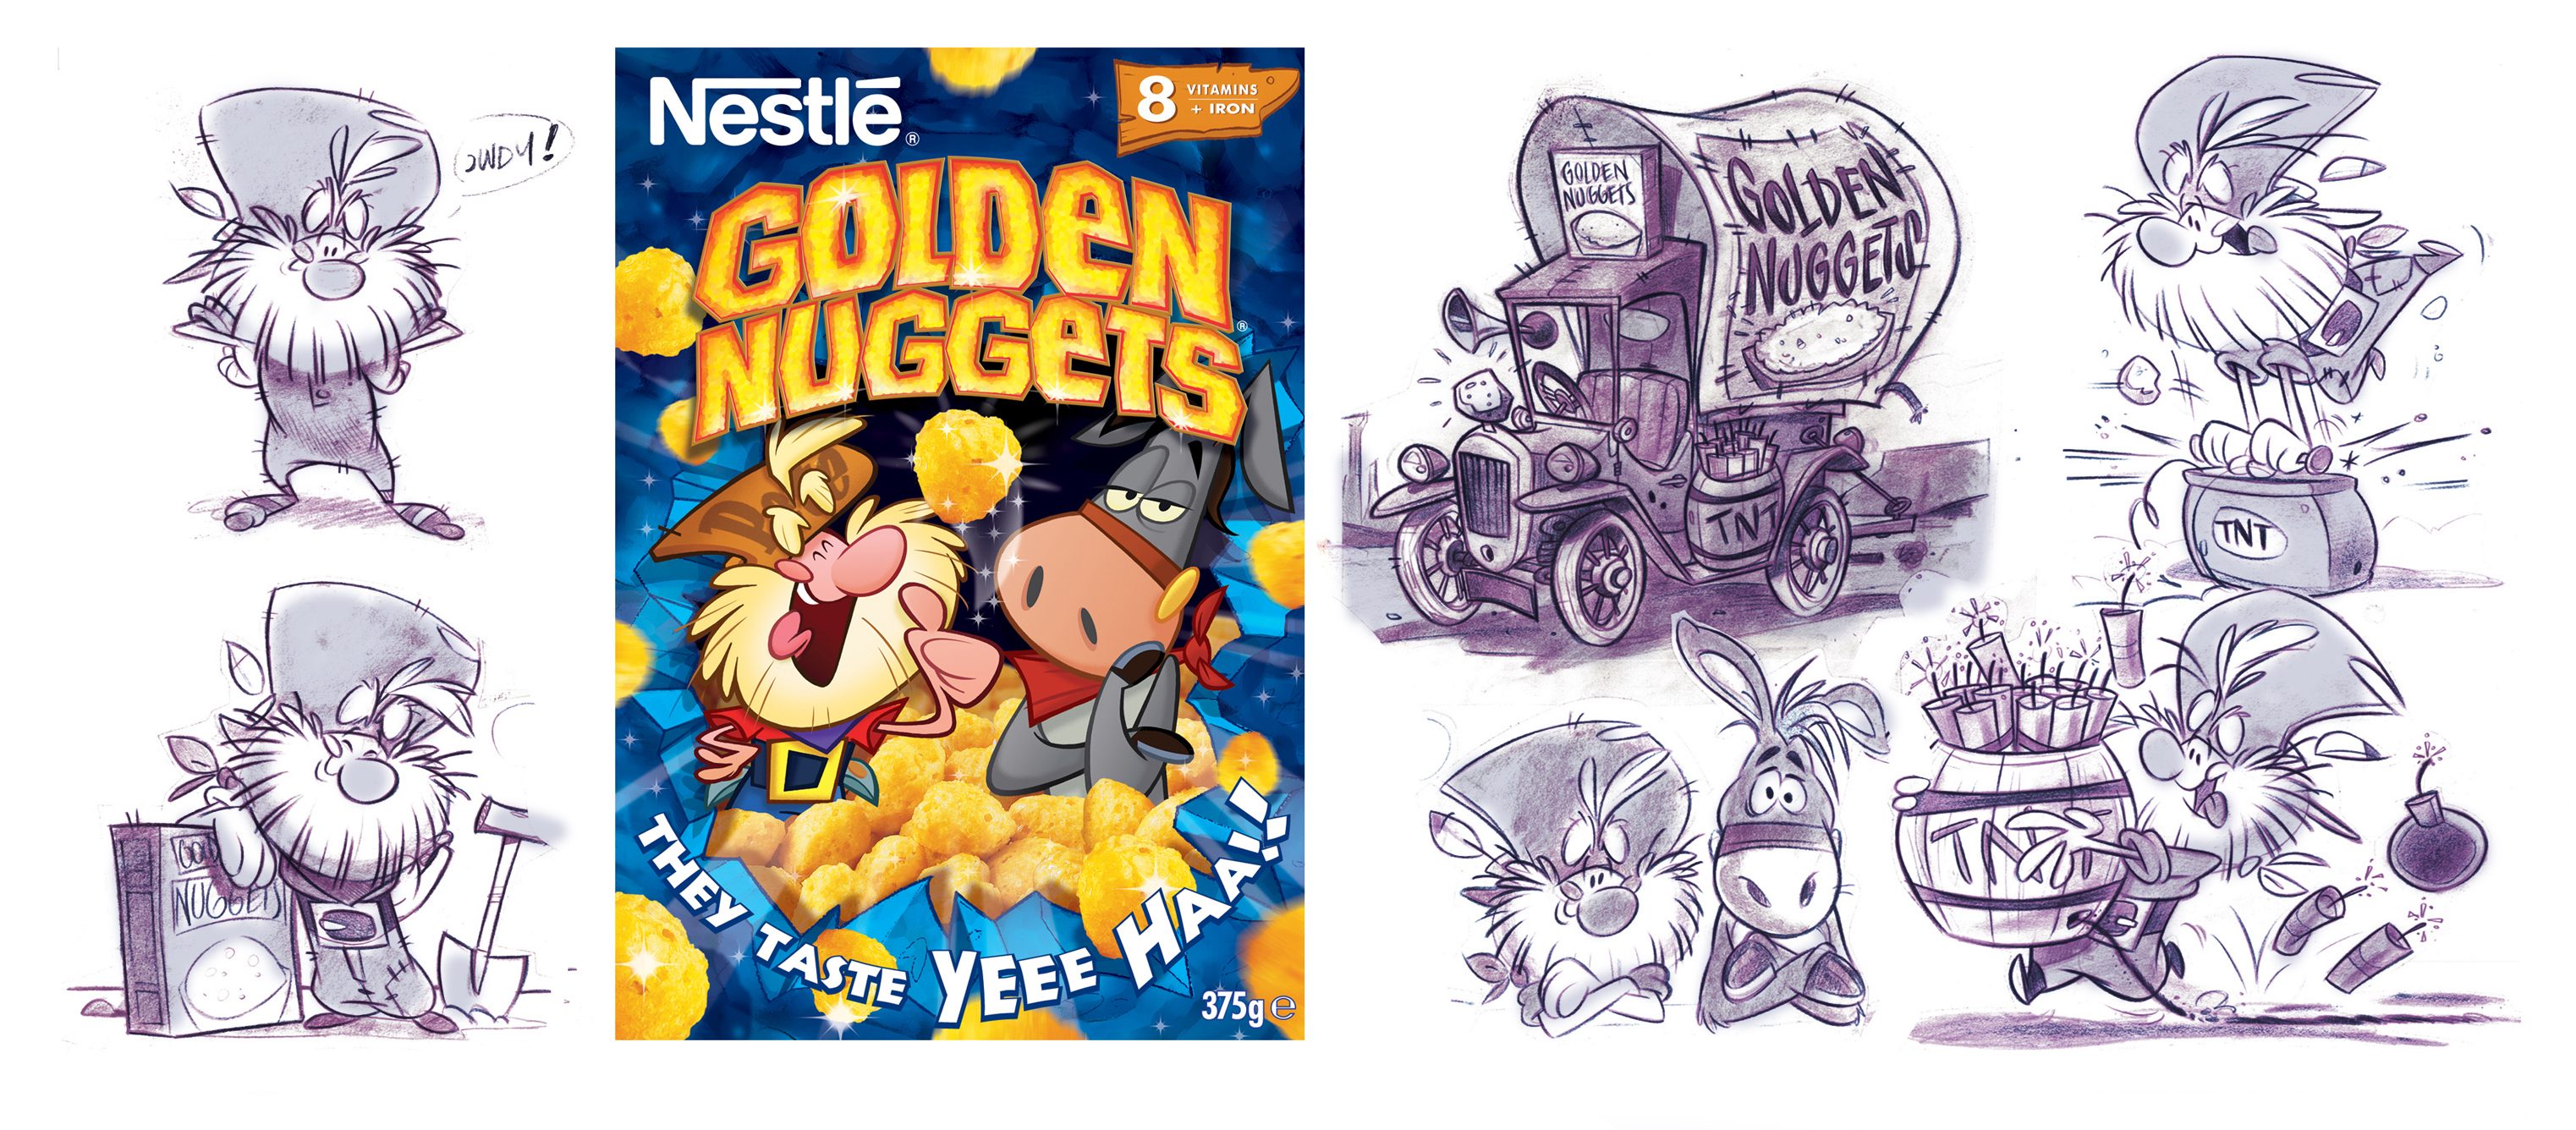 Golden Nuggets packaging and models